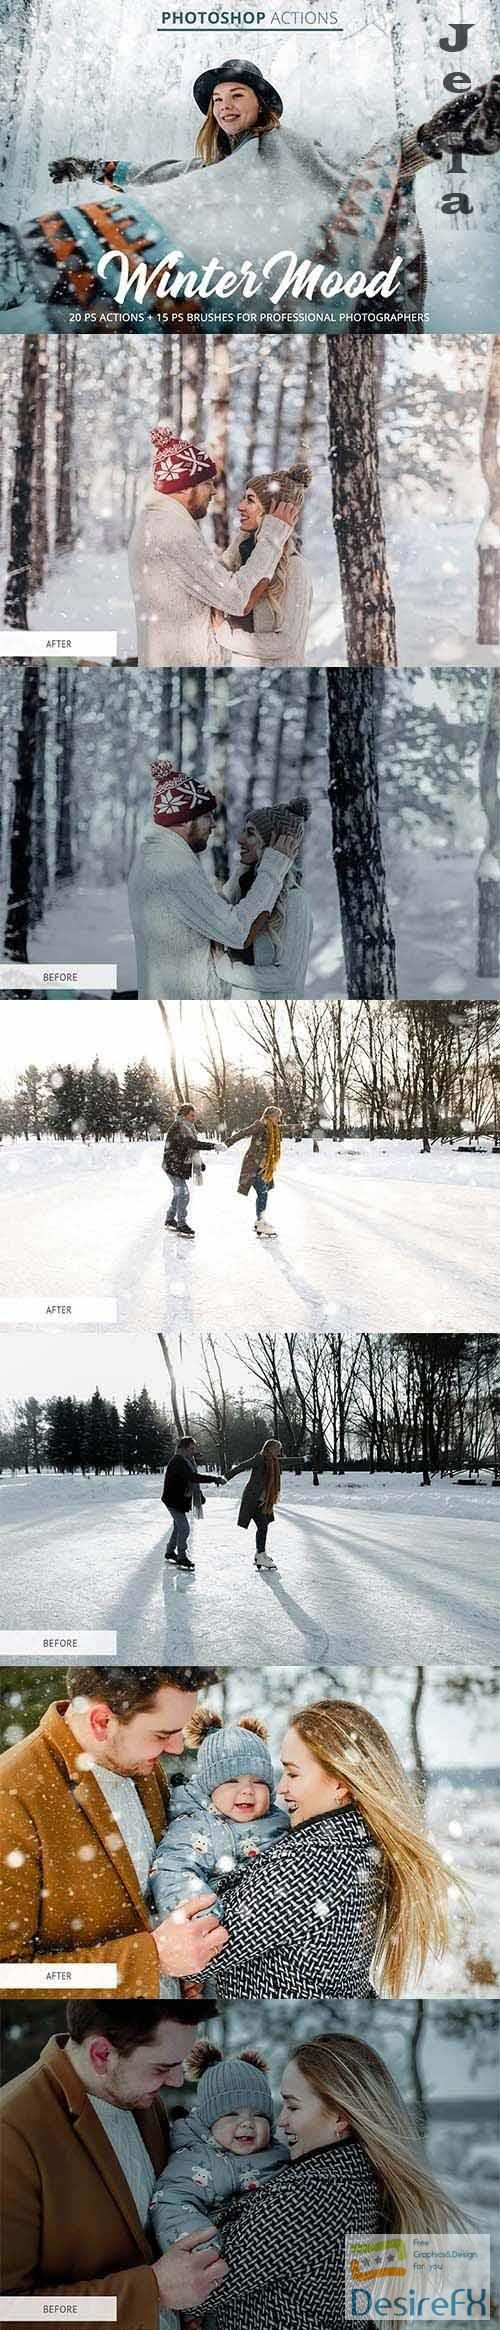 CreativeMarket - Winter Mood Actions for Photoshop - 4849563